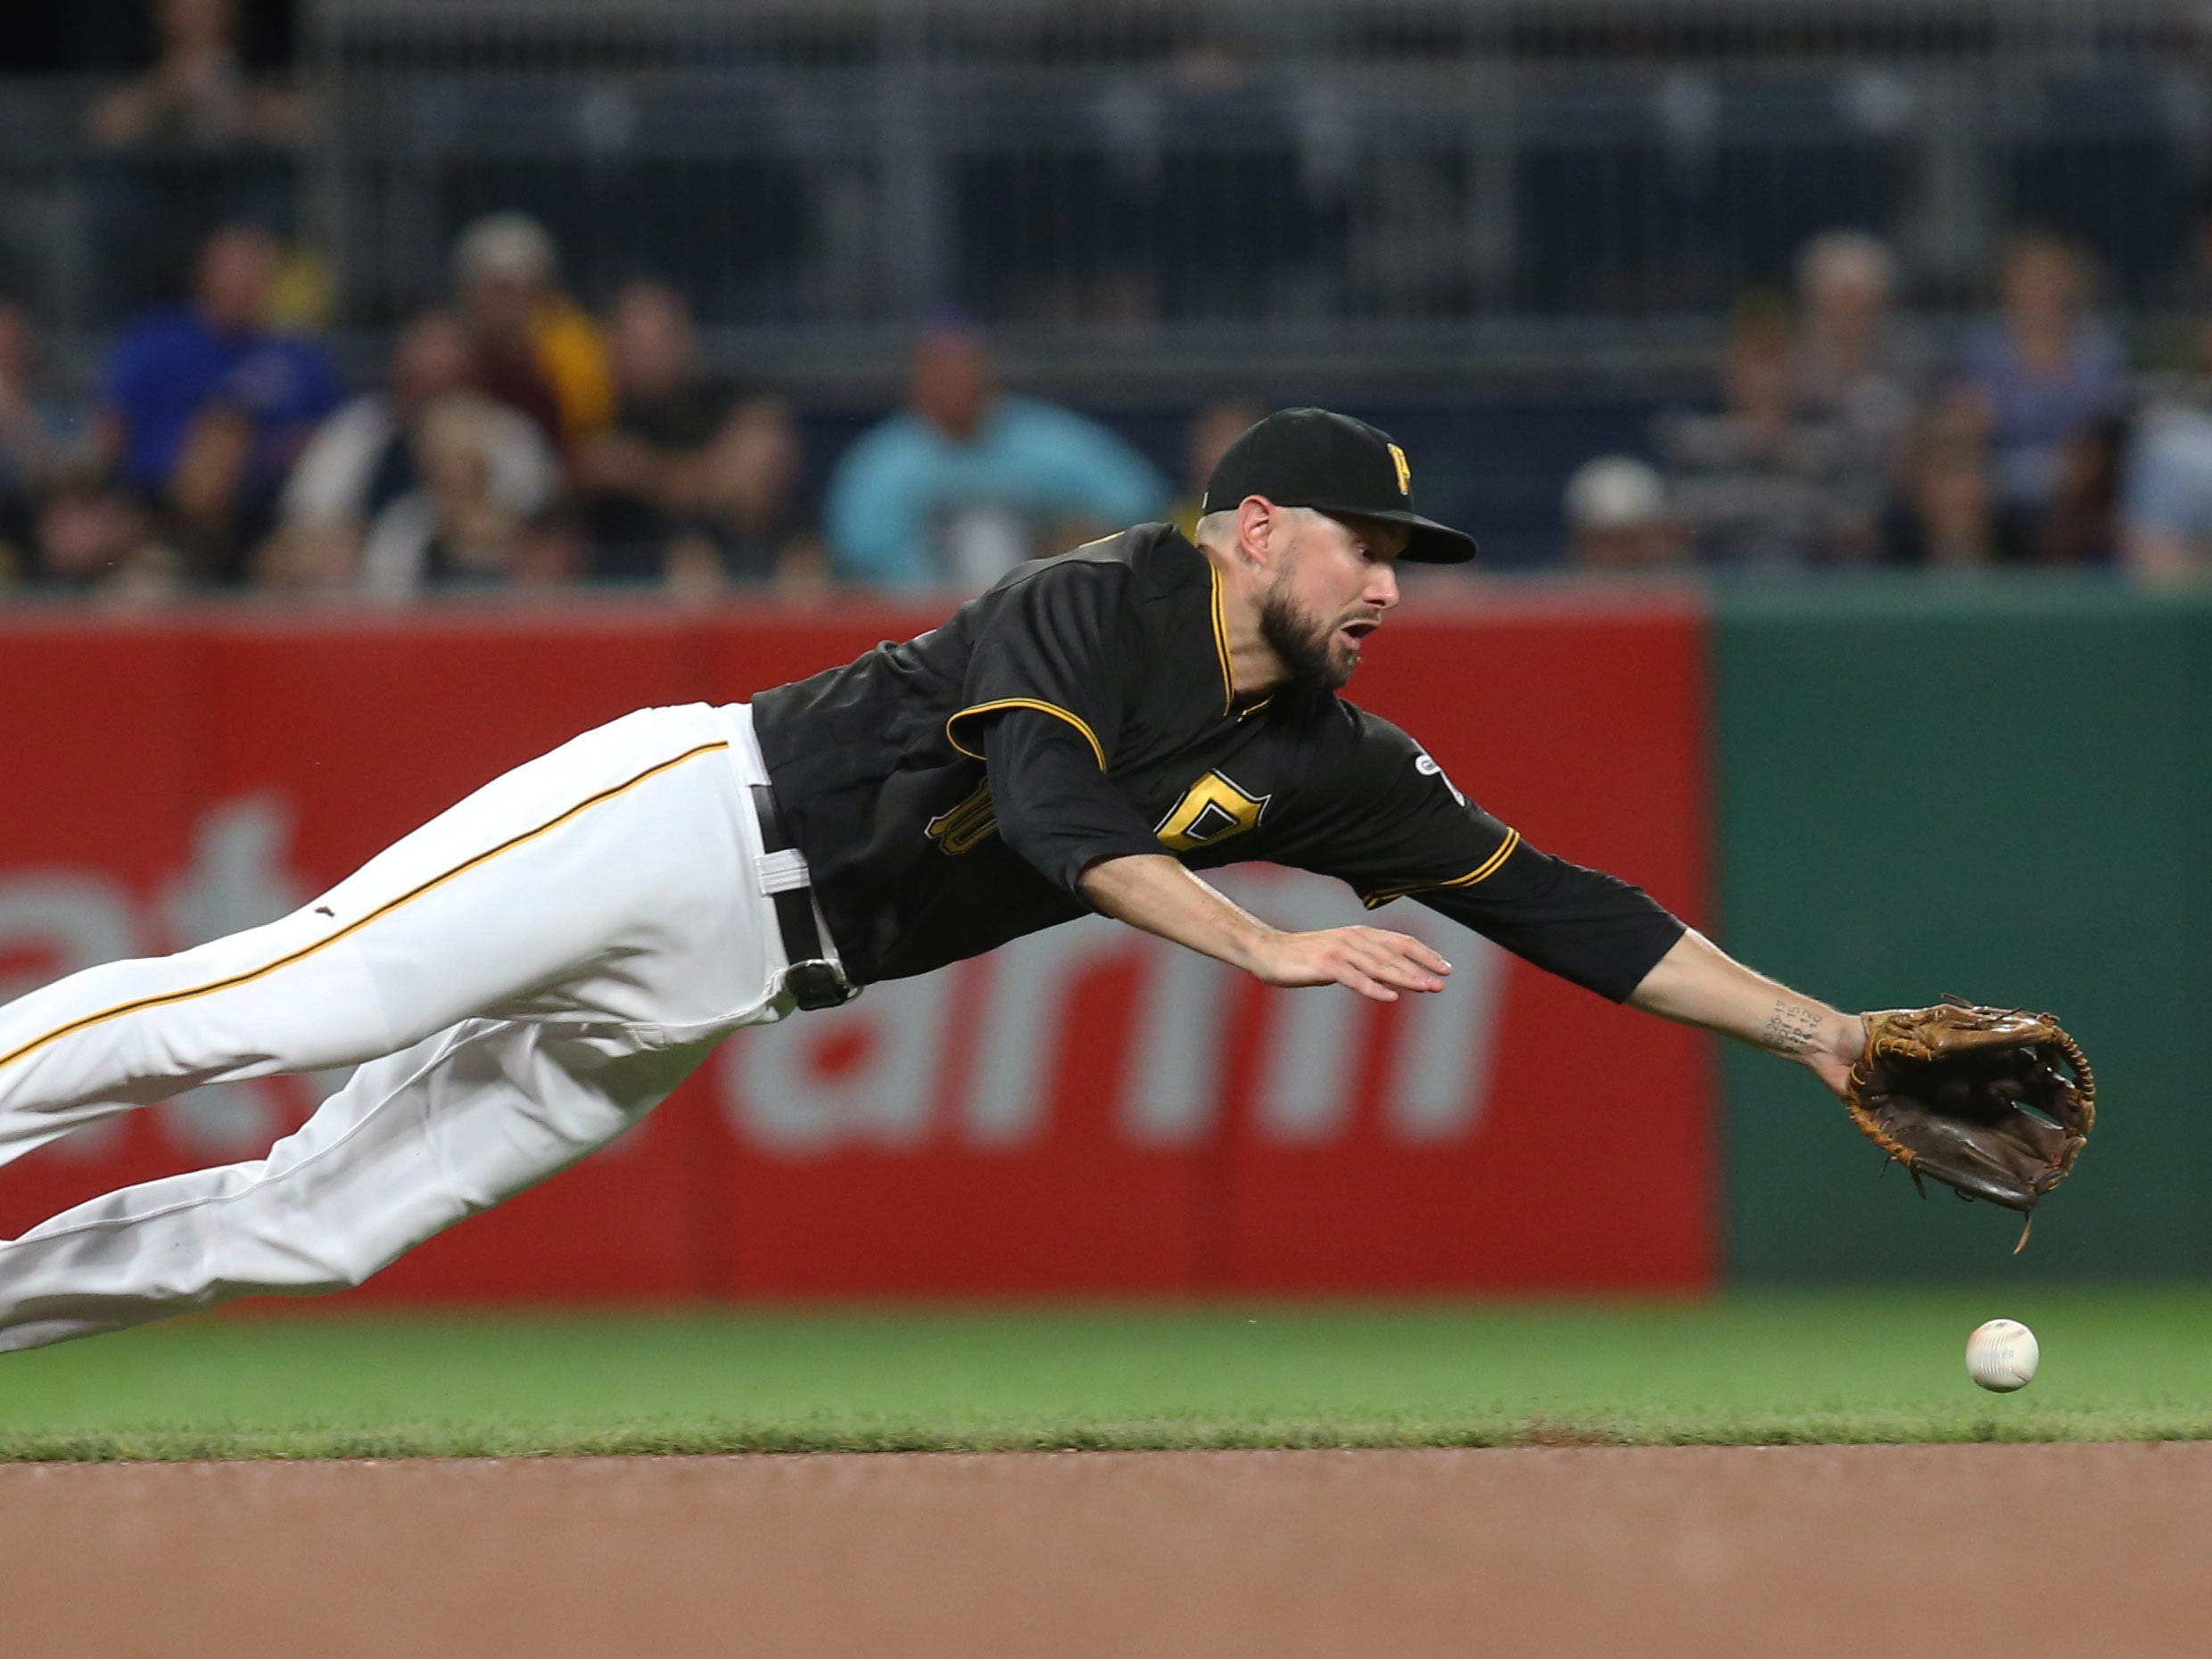 Pittsburgh Pirates shortstop Jordy Mercer dives for a ground ball against the Miami Marlins in the fourth inning at PNC Park, Sept. 7, 2018.